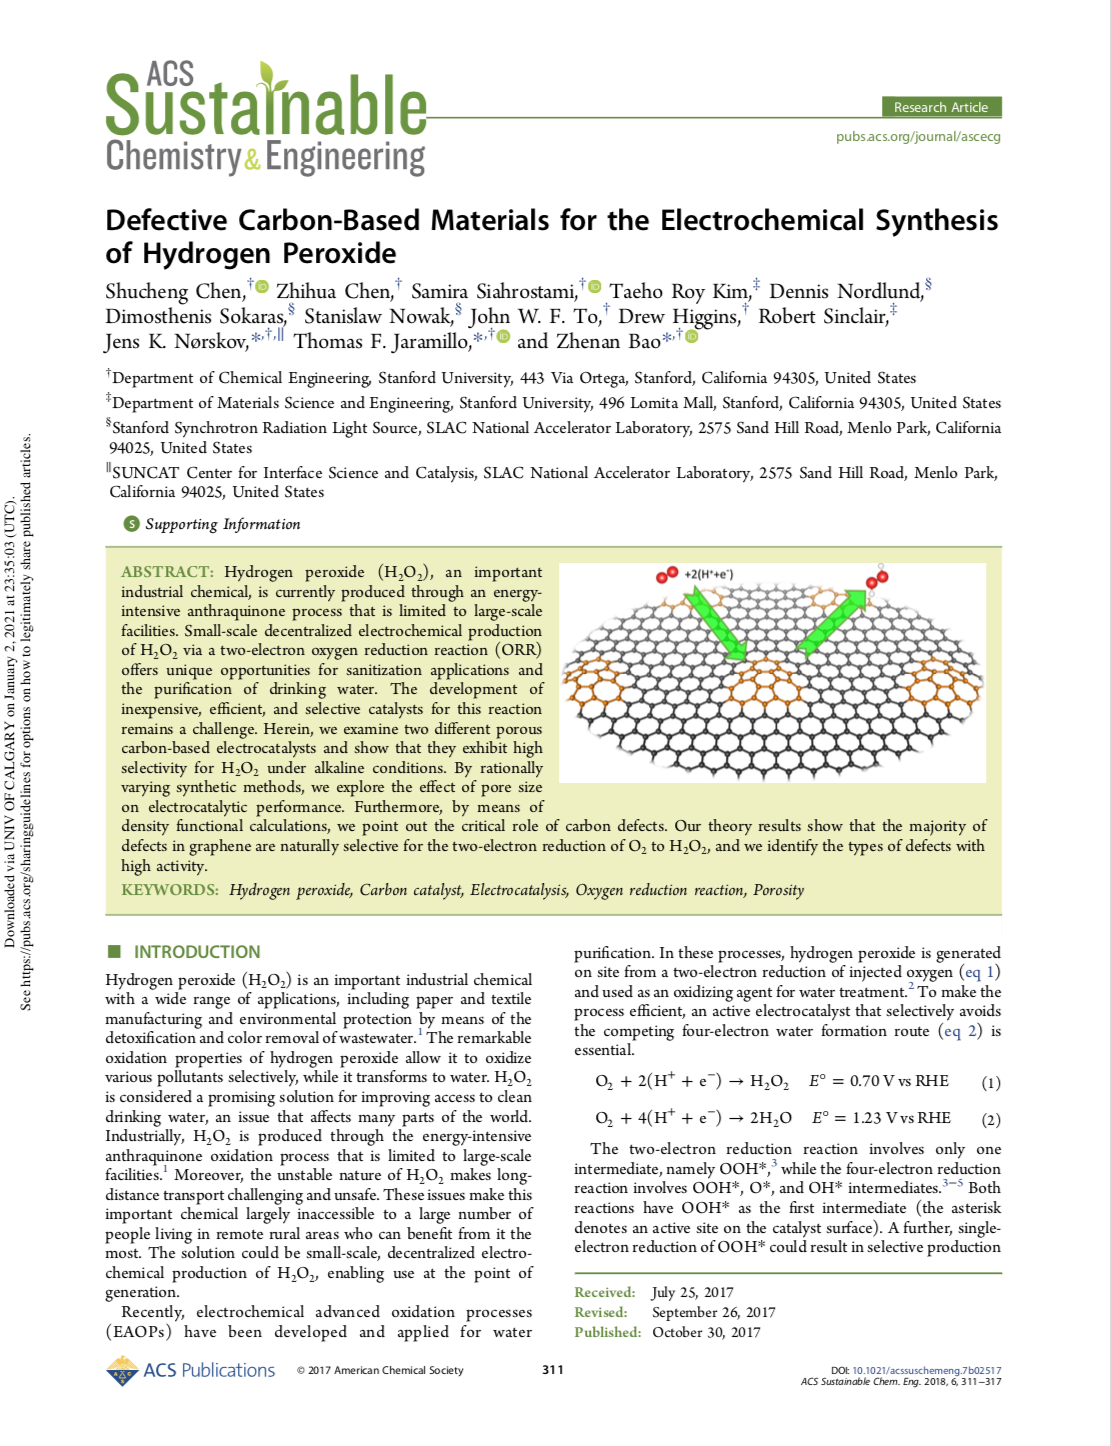 Defective Carbon-Based Materials for the Electrochemical Synthesis of Hydrogen Peroxide